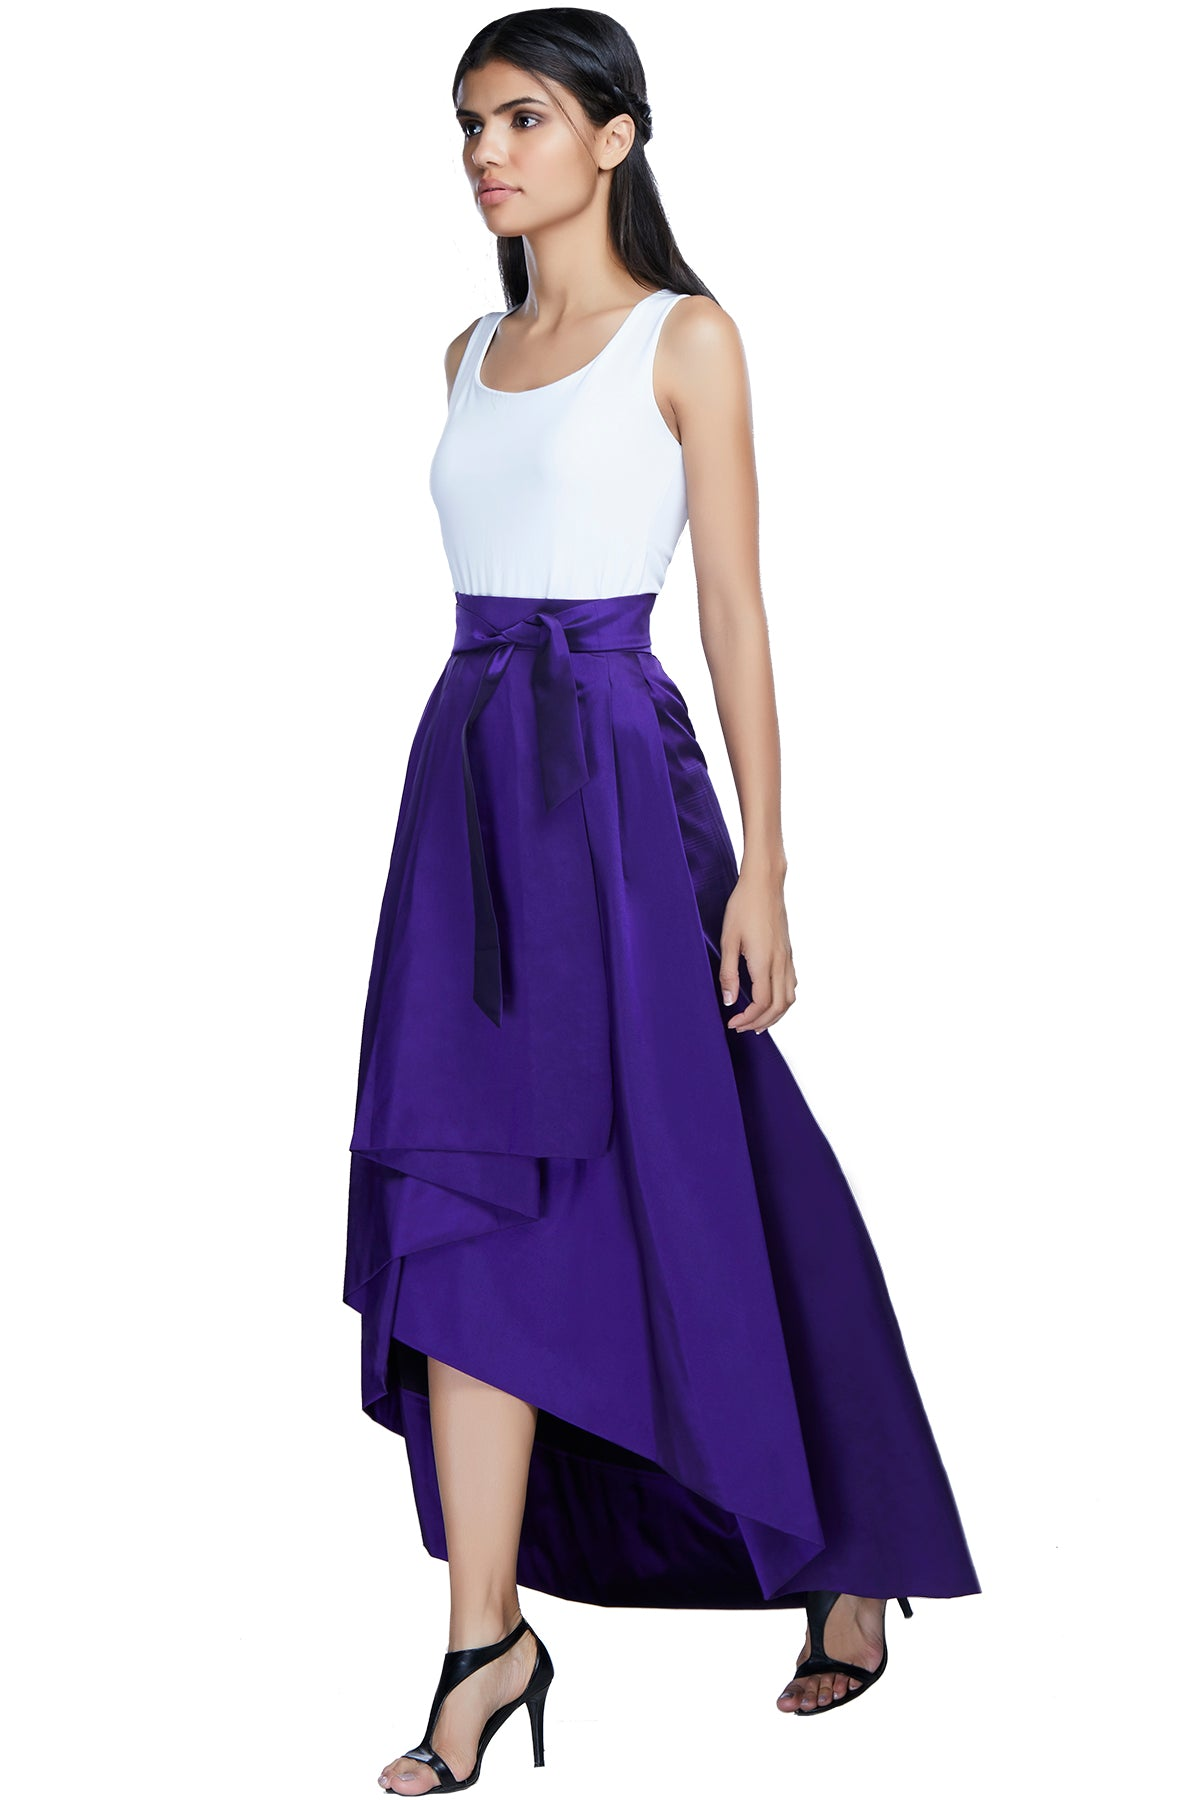 Tease your mood in this sometimes up, sometimes down purple hi-low skirt with a front bow and box pleats.